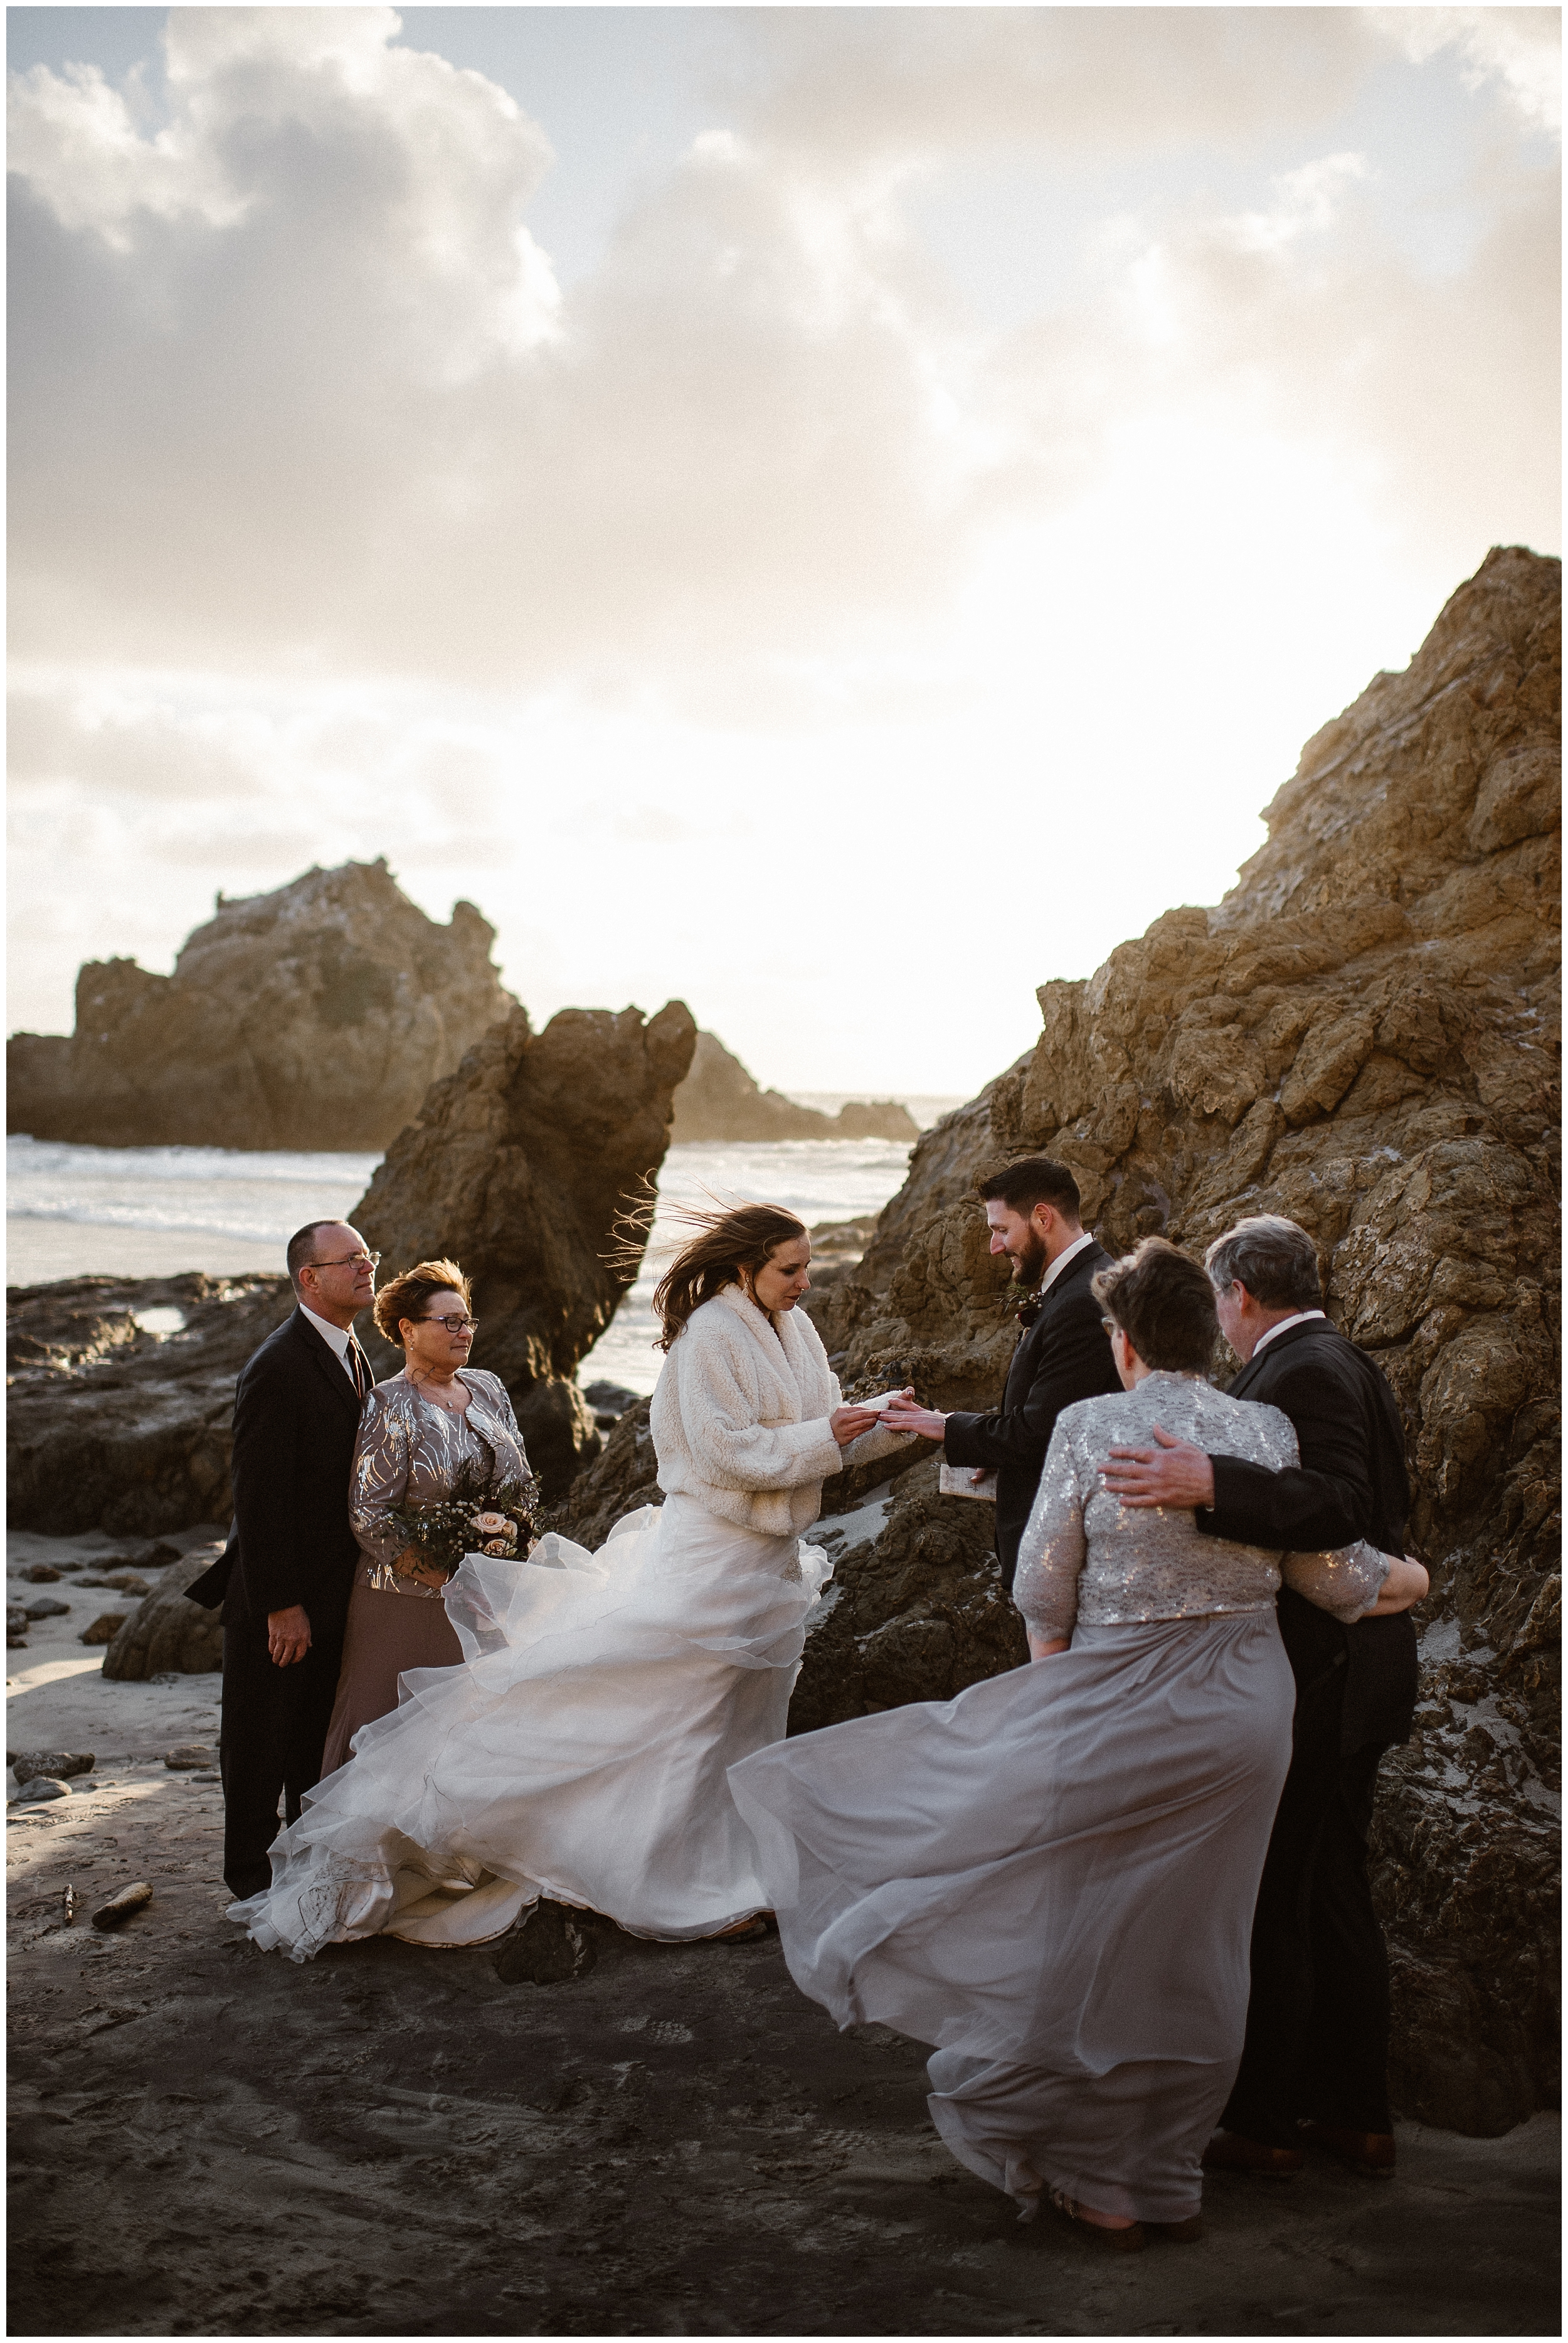 A bride and groom say their vows in front of their witnesses during their elopement ceremony. They're standing on a rocky, sandy beach on the Pacific Ocean. The bride, wearing a wedding dress and a white jacket, slips the wedding ring on her new husbands finger. Eloping with family is a great way to ensure you have the witnesses you need at your ceremony.